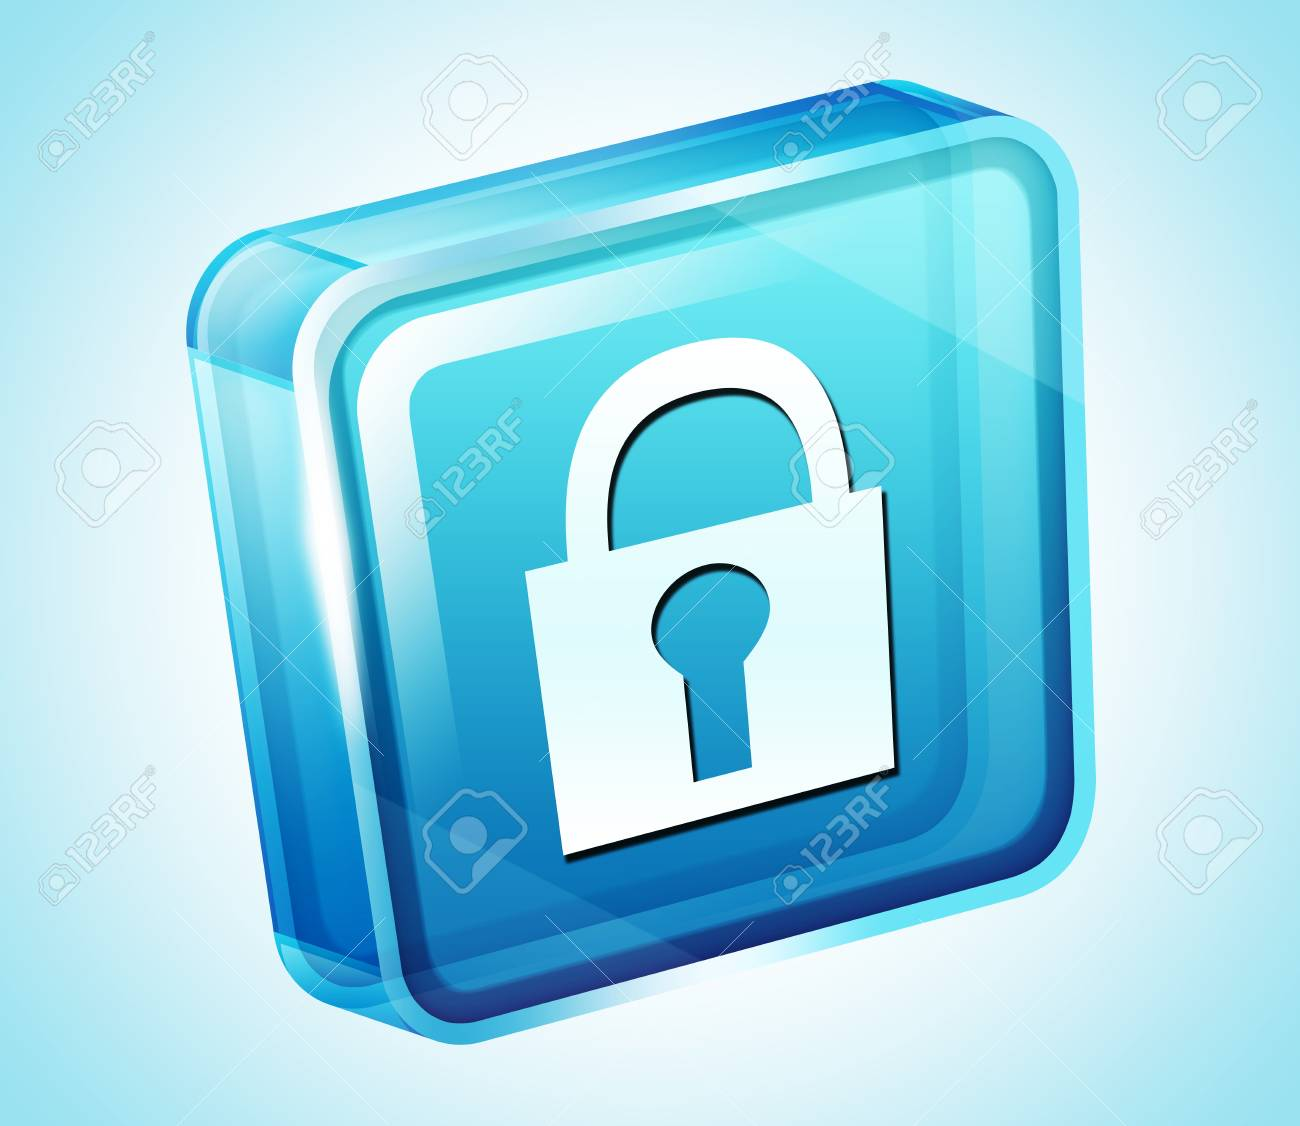 Transparent to the 3d icon Stock Photo - 15903280